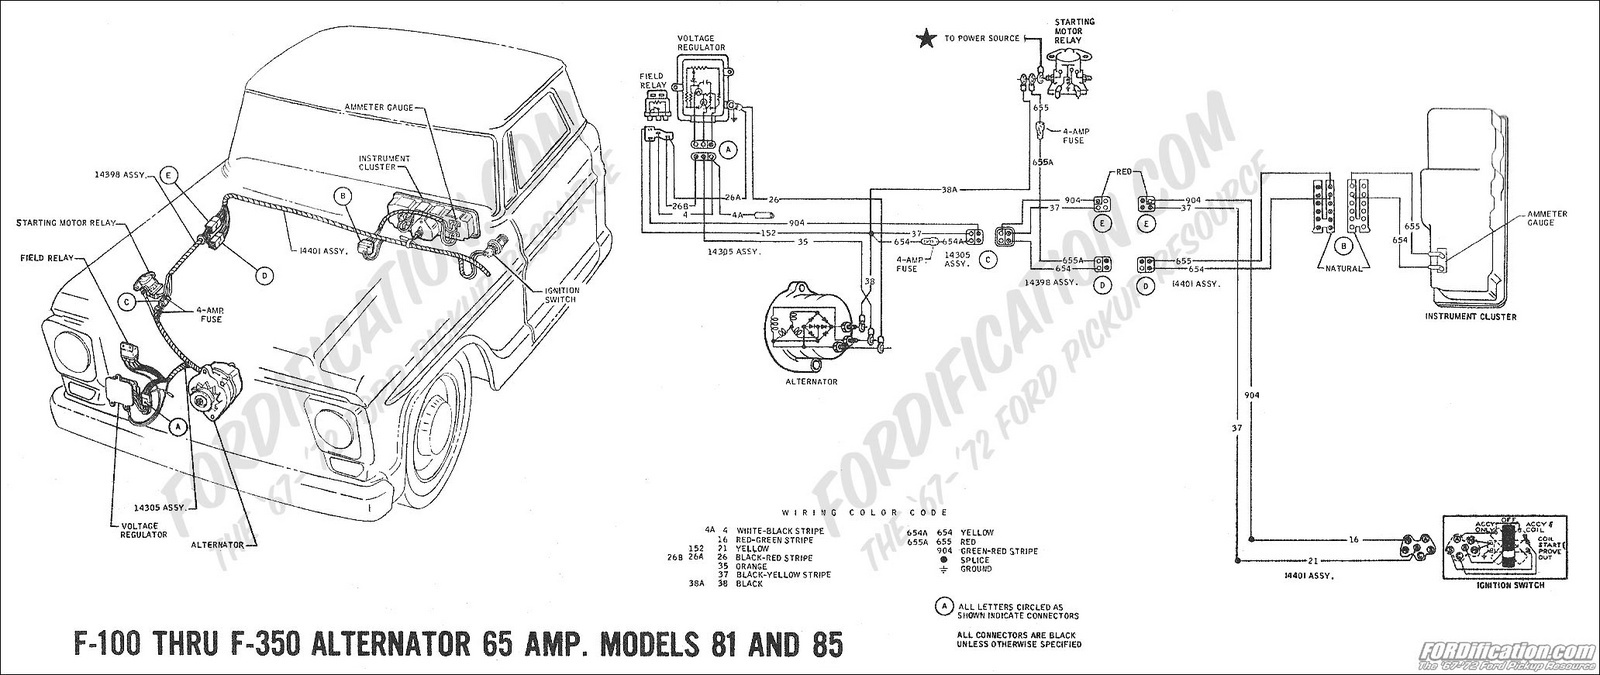 1973 Ford Truck Wiring Diagram Circuit Symbols Mustang Images Gallery F 100 Questions I Have A 73 No Power To The